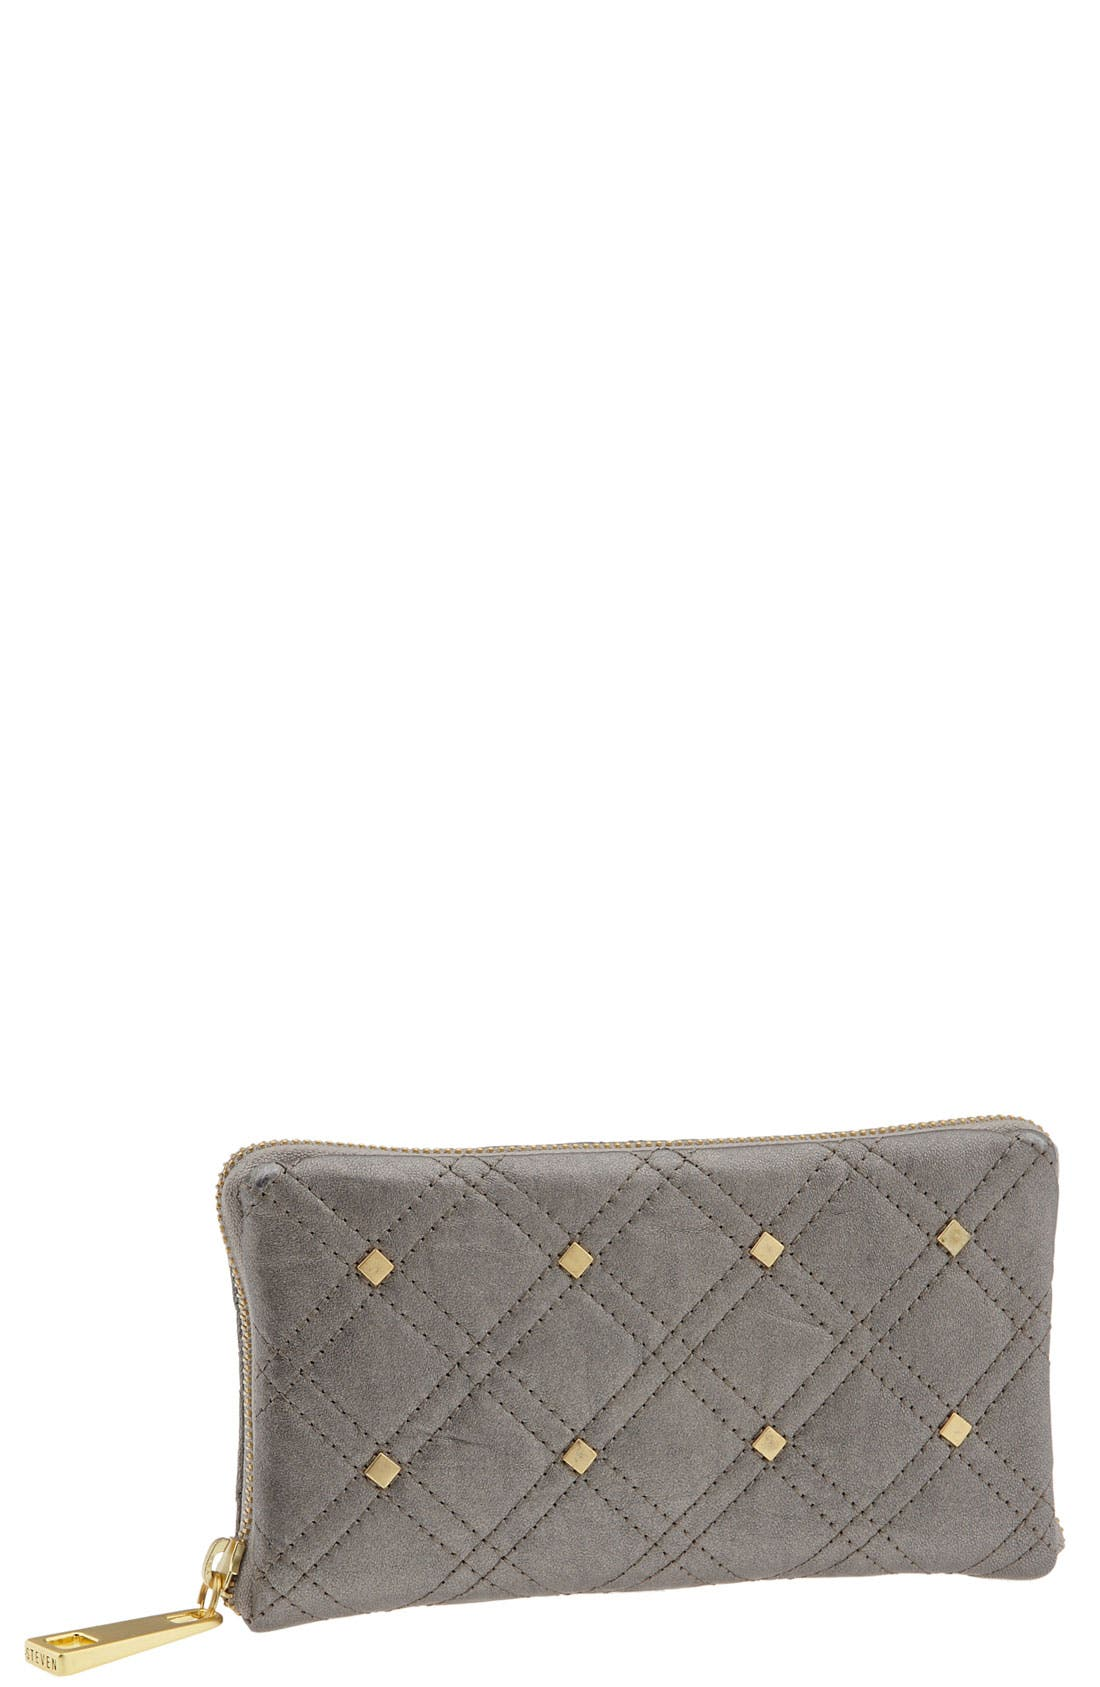 Alternate Image 1 Selected - Steven by Steve Madden Quilted Zip Around Wallet